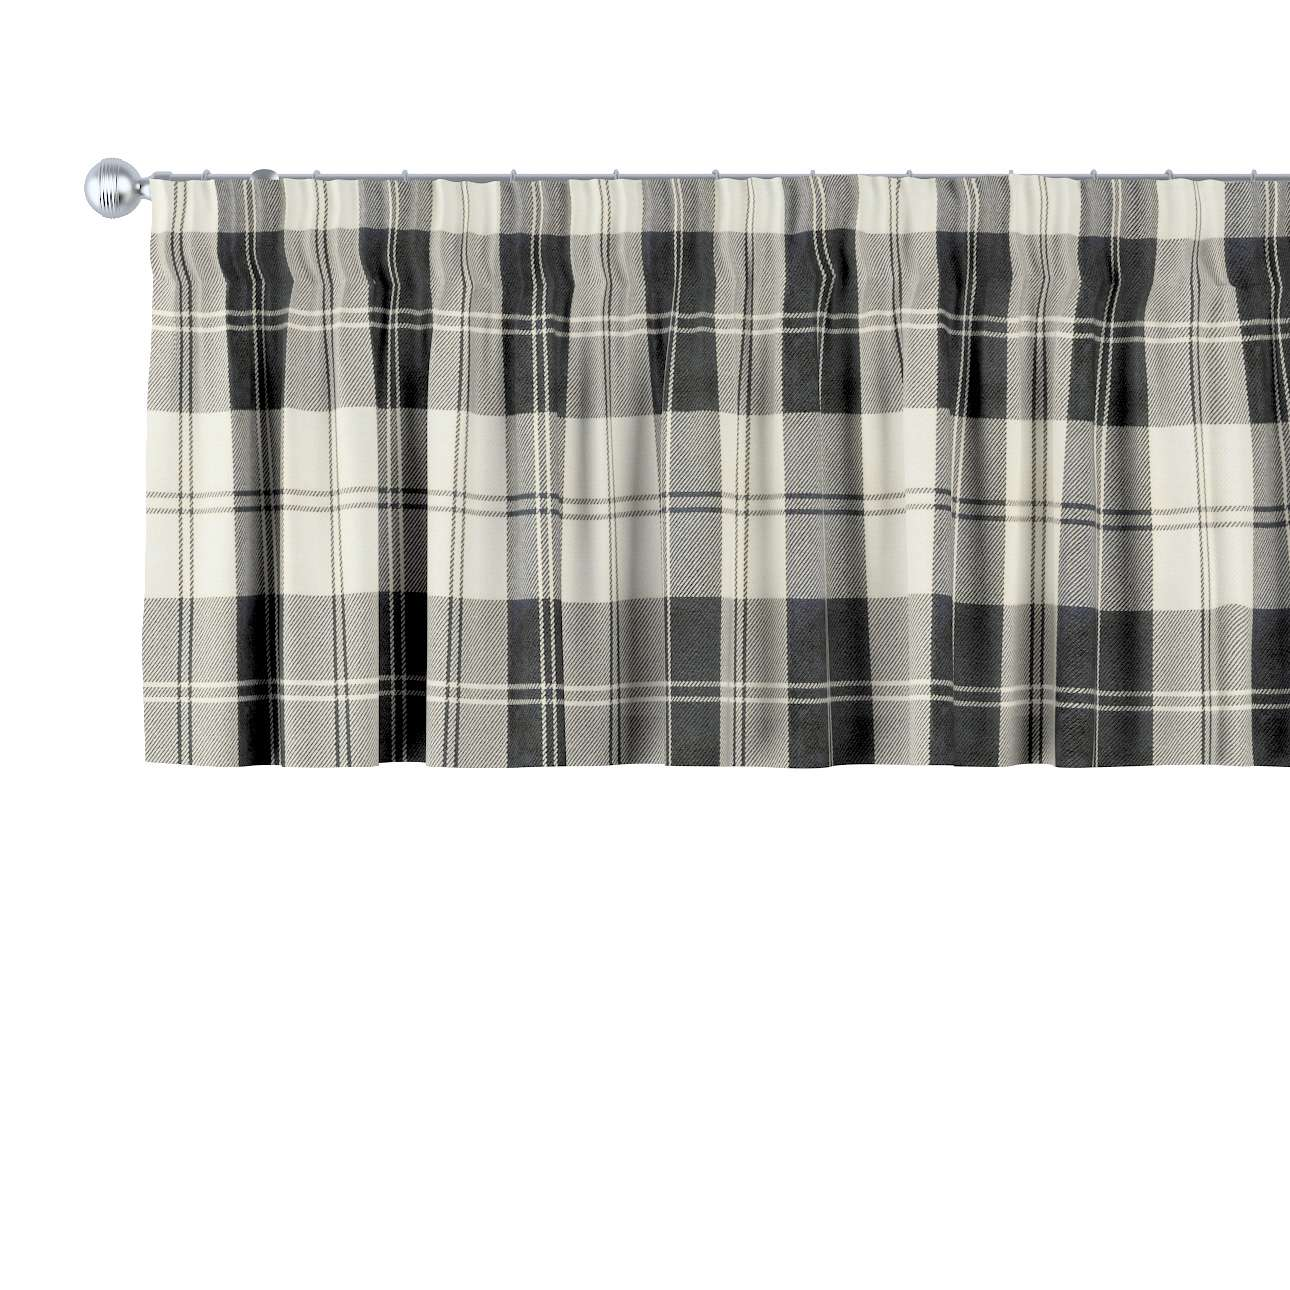 Pencil pleat pelmet 130 x 40 cm (51 x 16 inch) in collection Edinburgh, fabric: 115-74